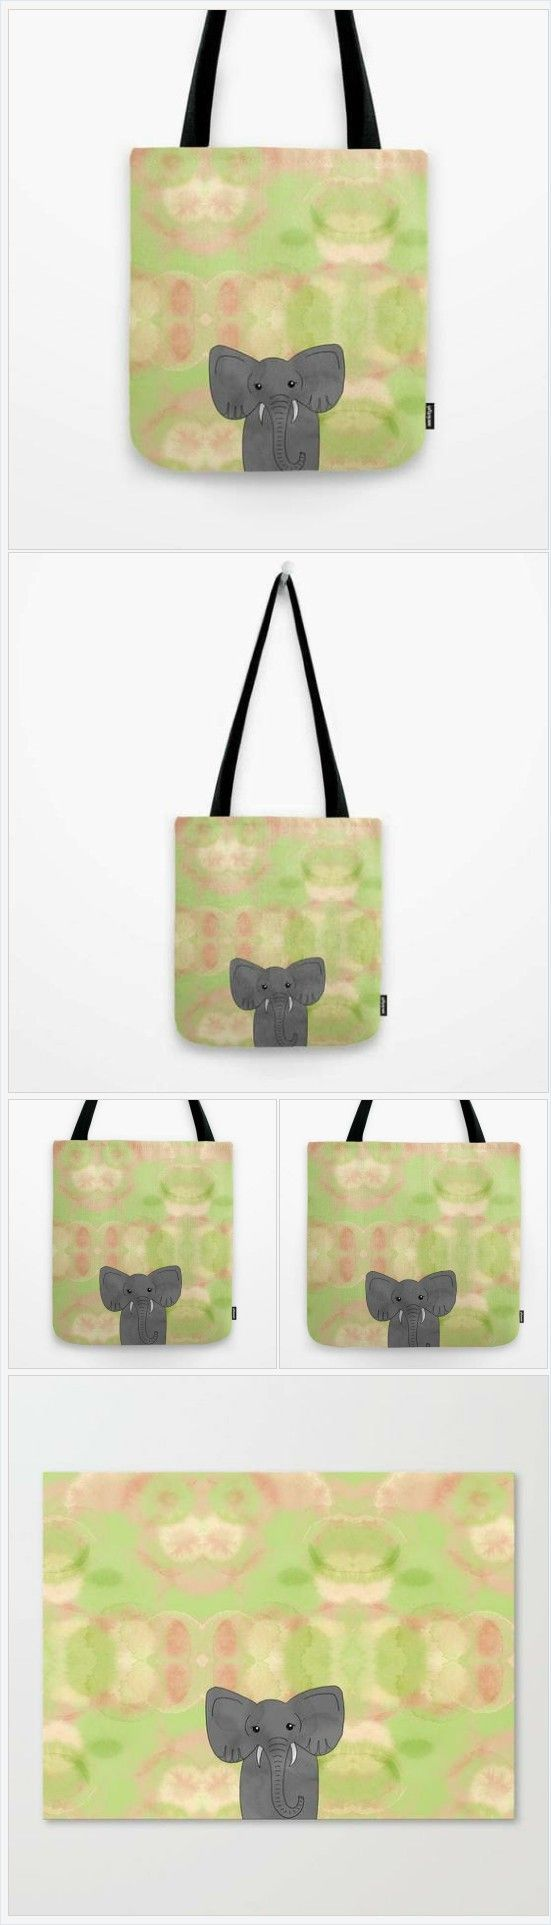 Elephant Tote Bag - Tote Bag - Green and Pink with Gray Elephant - Book Bag - Carry All Tote - Made to Order